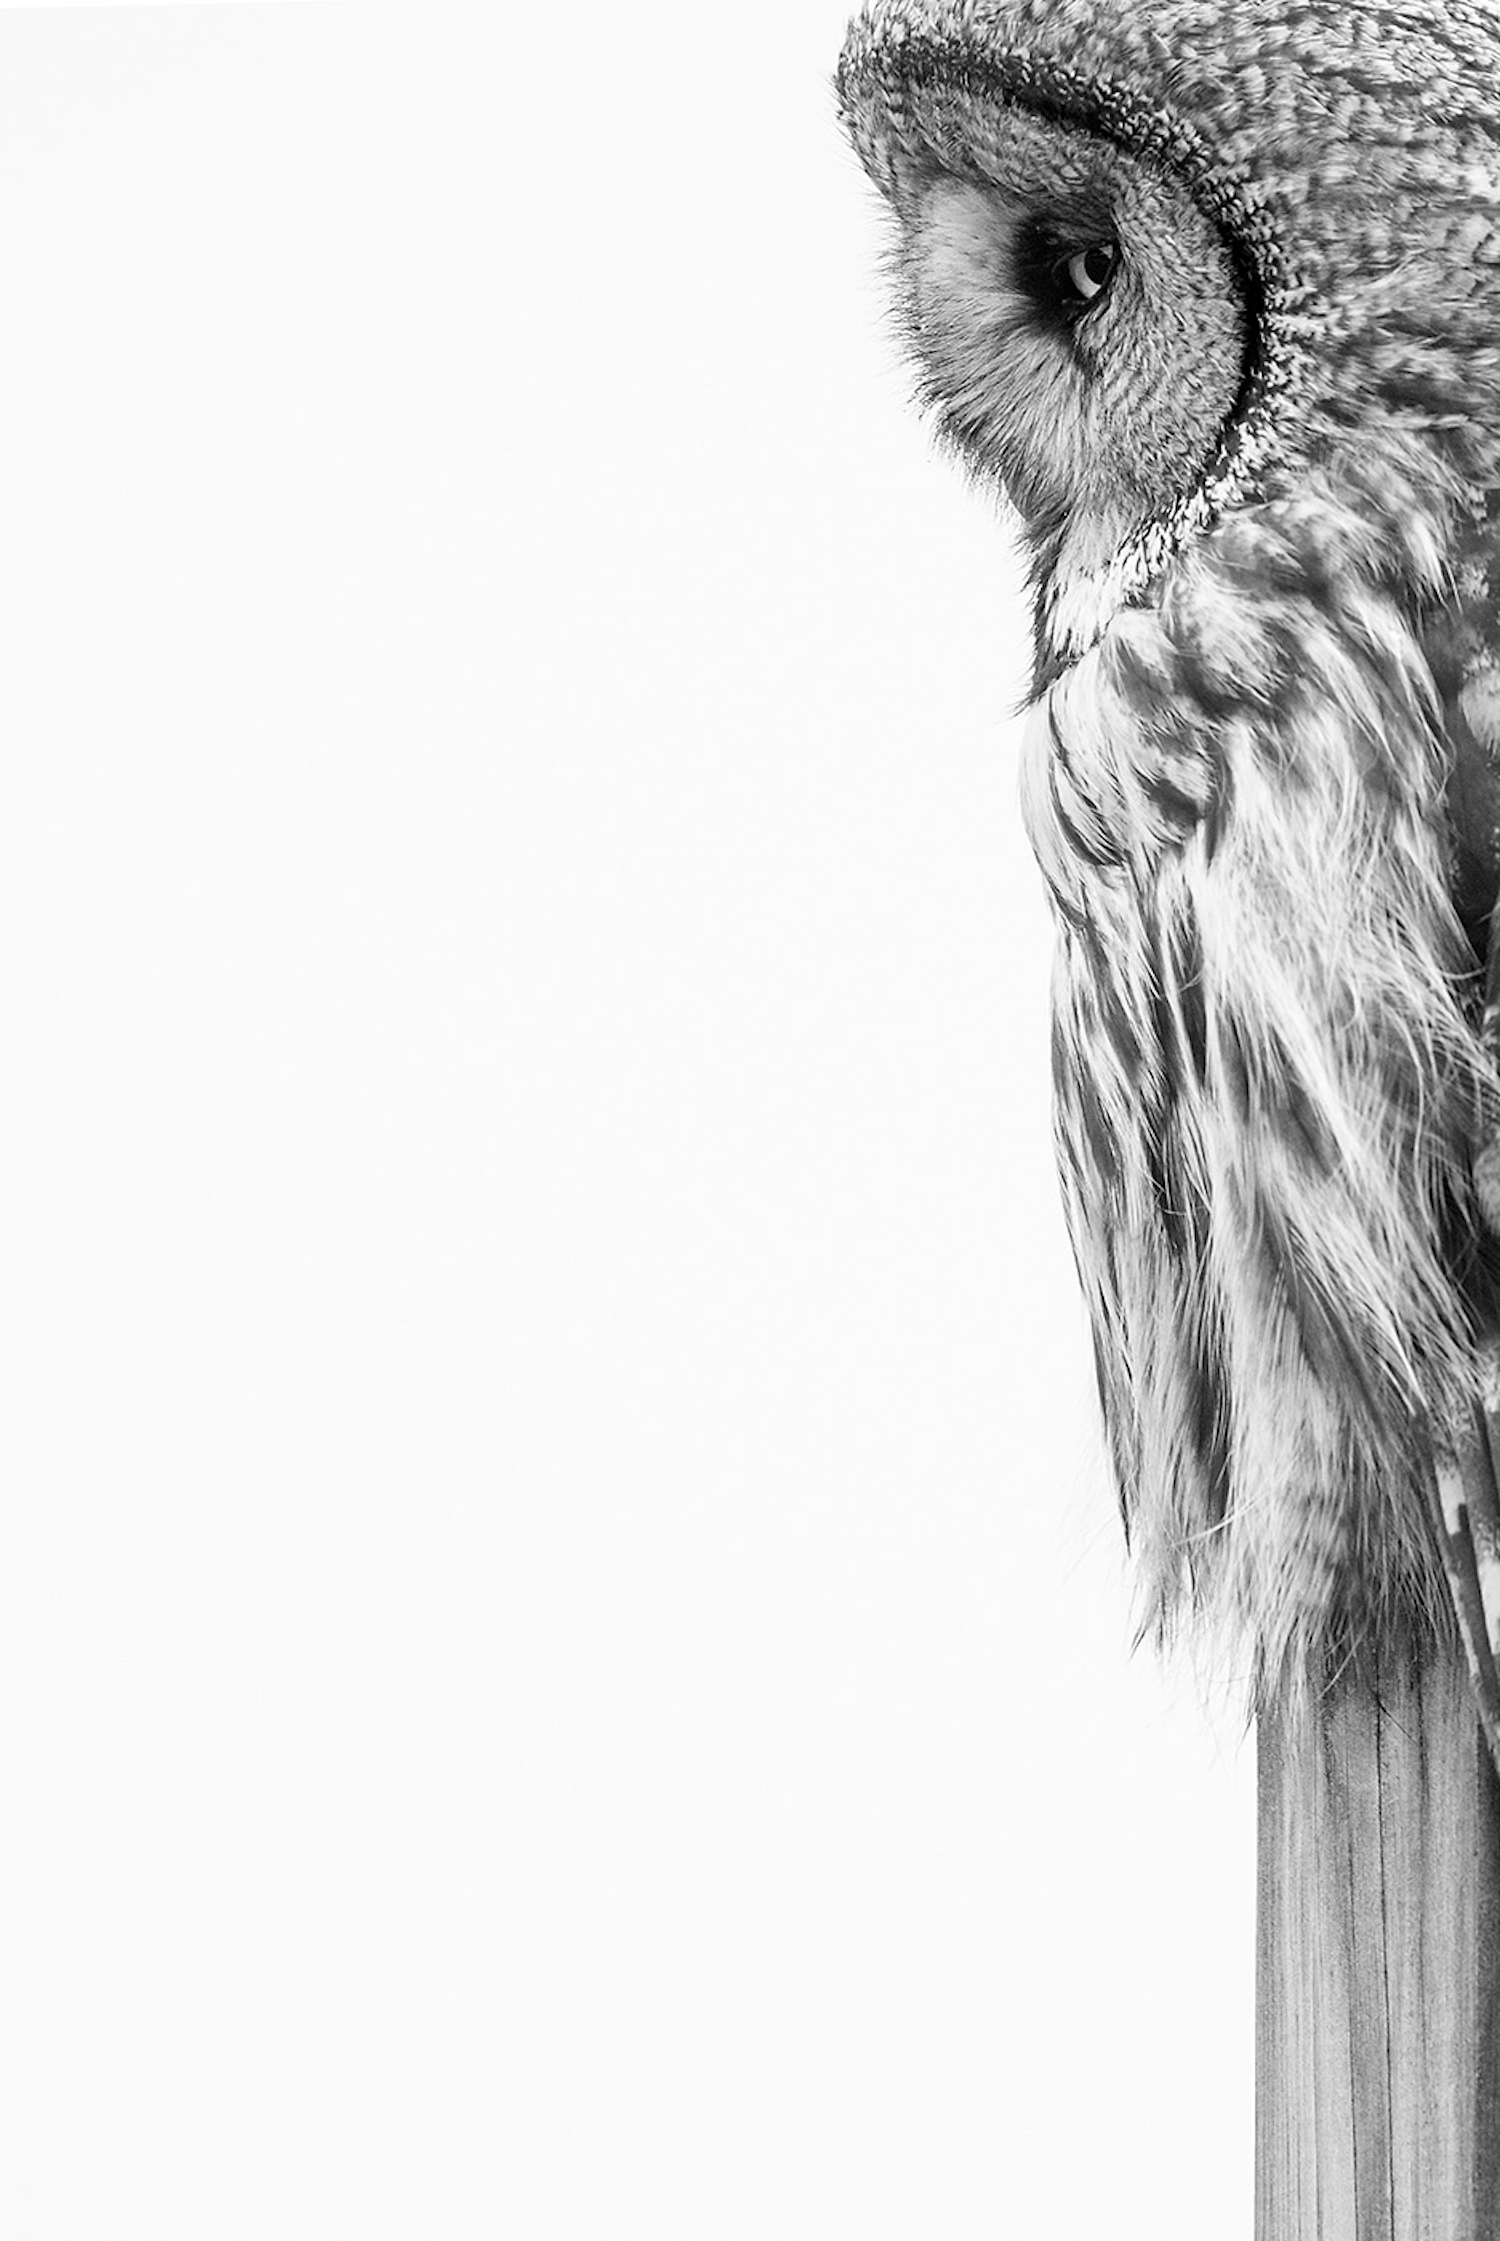 Black-and-white photo of a Great Grey Owl in profile.